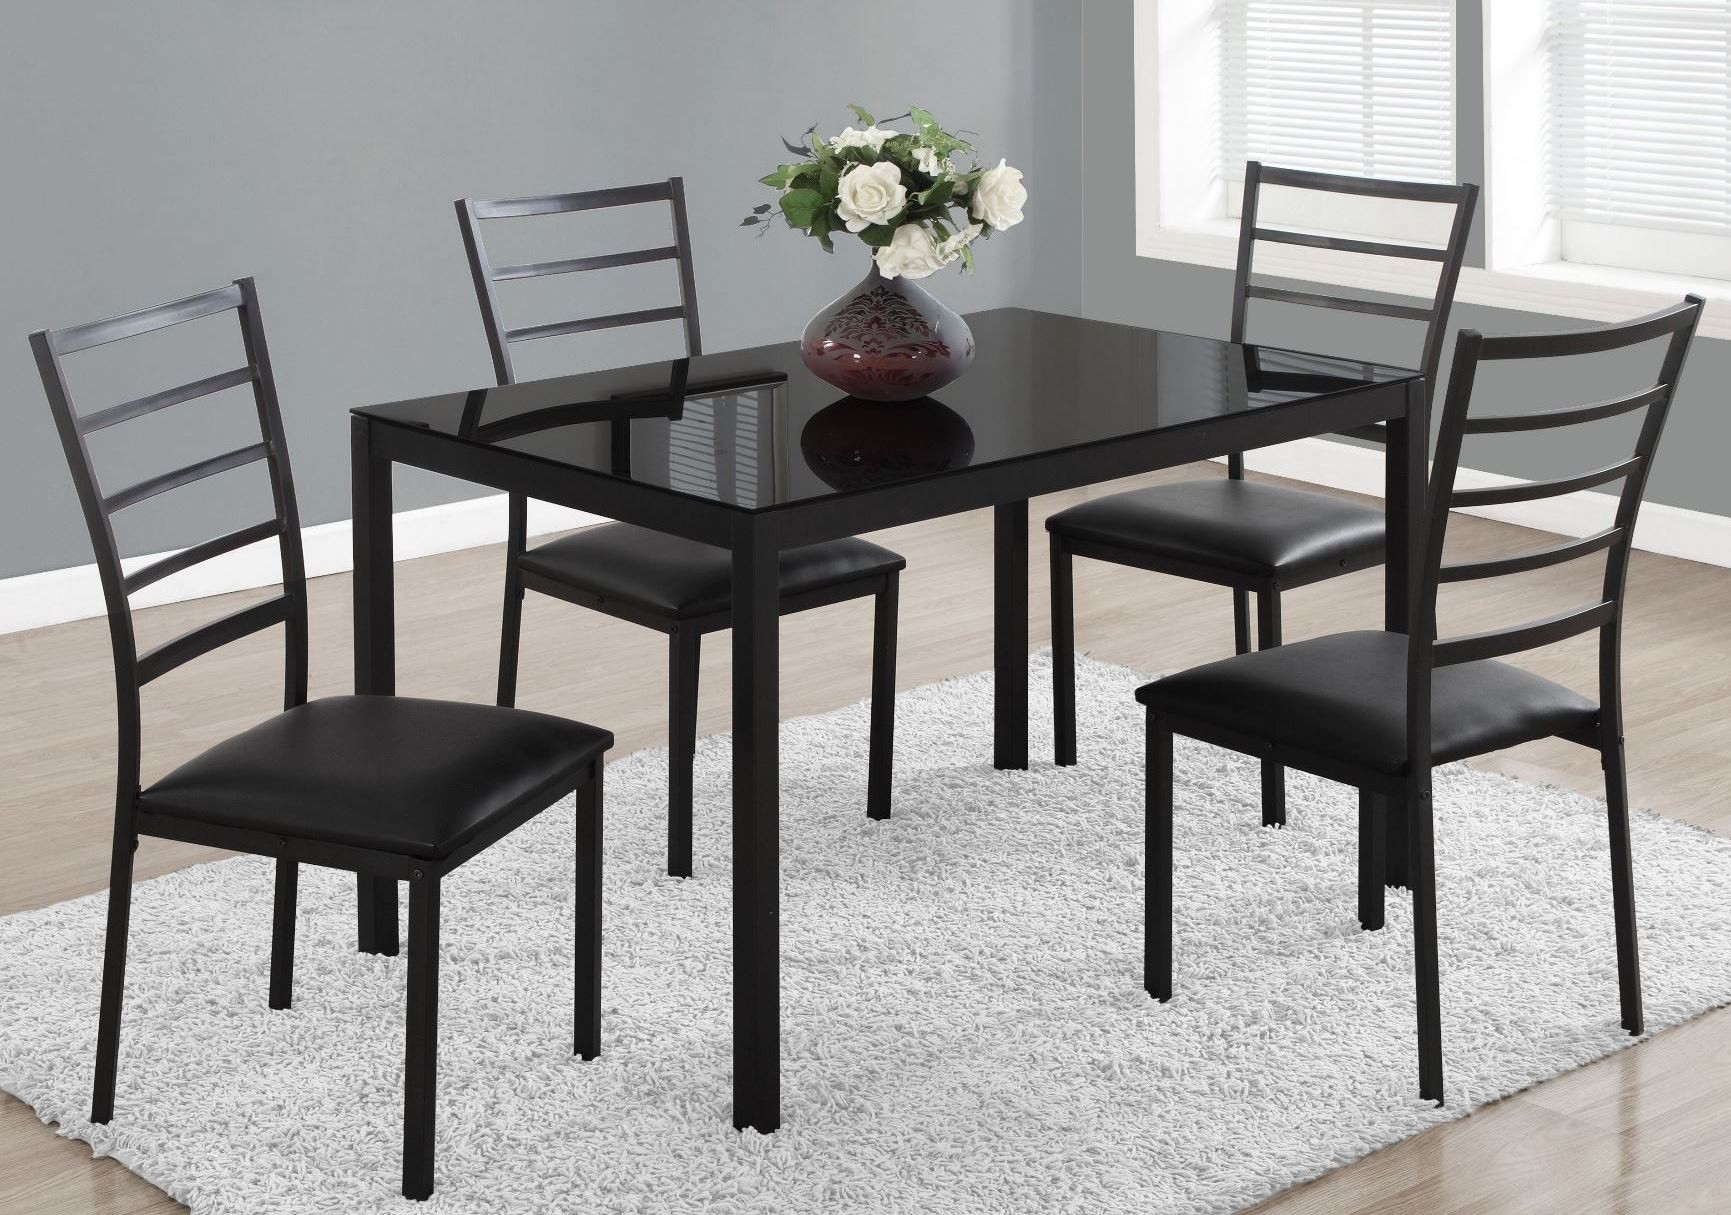 Black Metal 5 Piece Rectangular Dining Room Set From